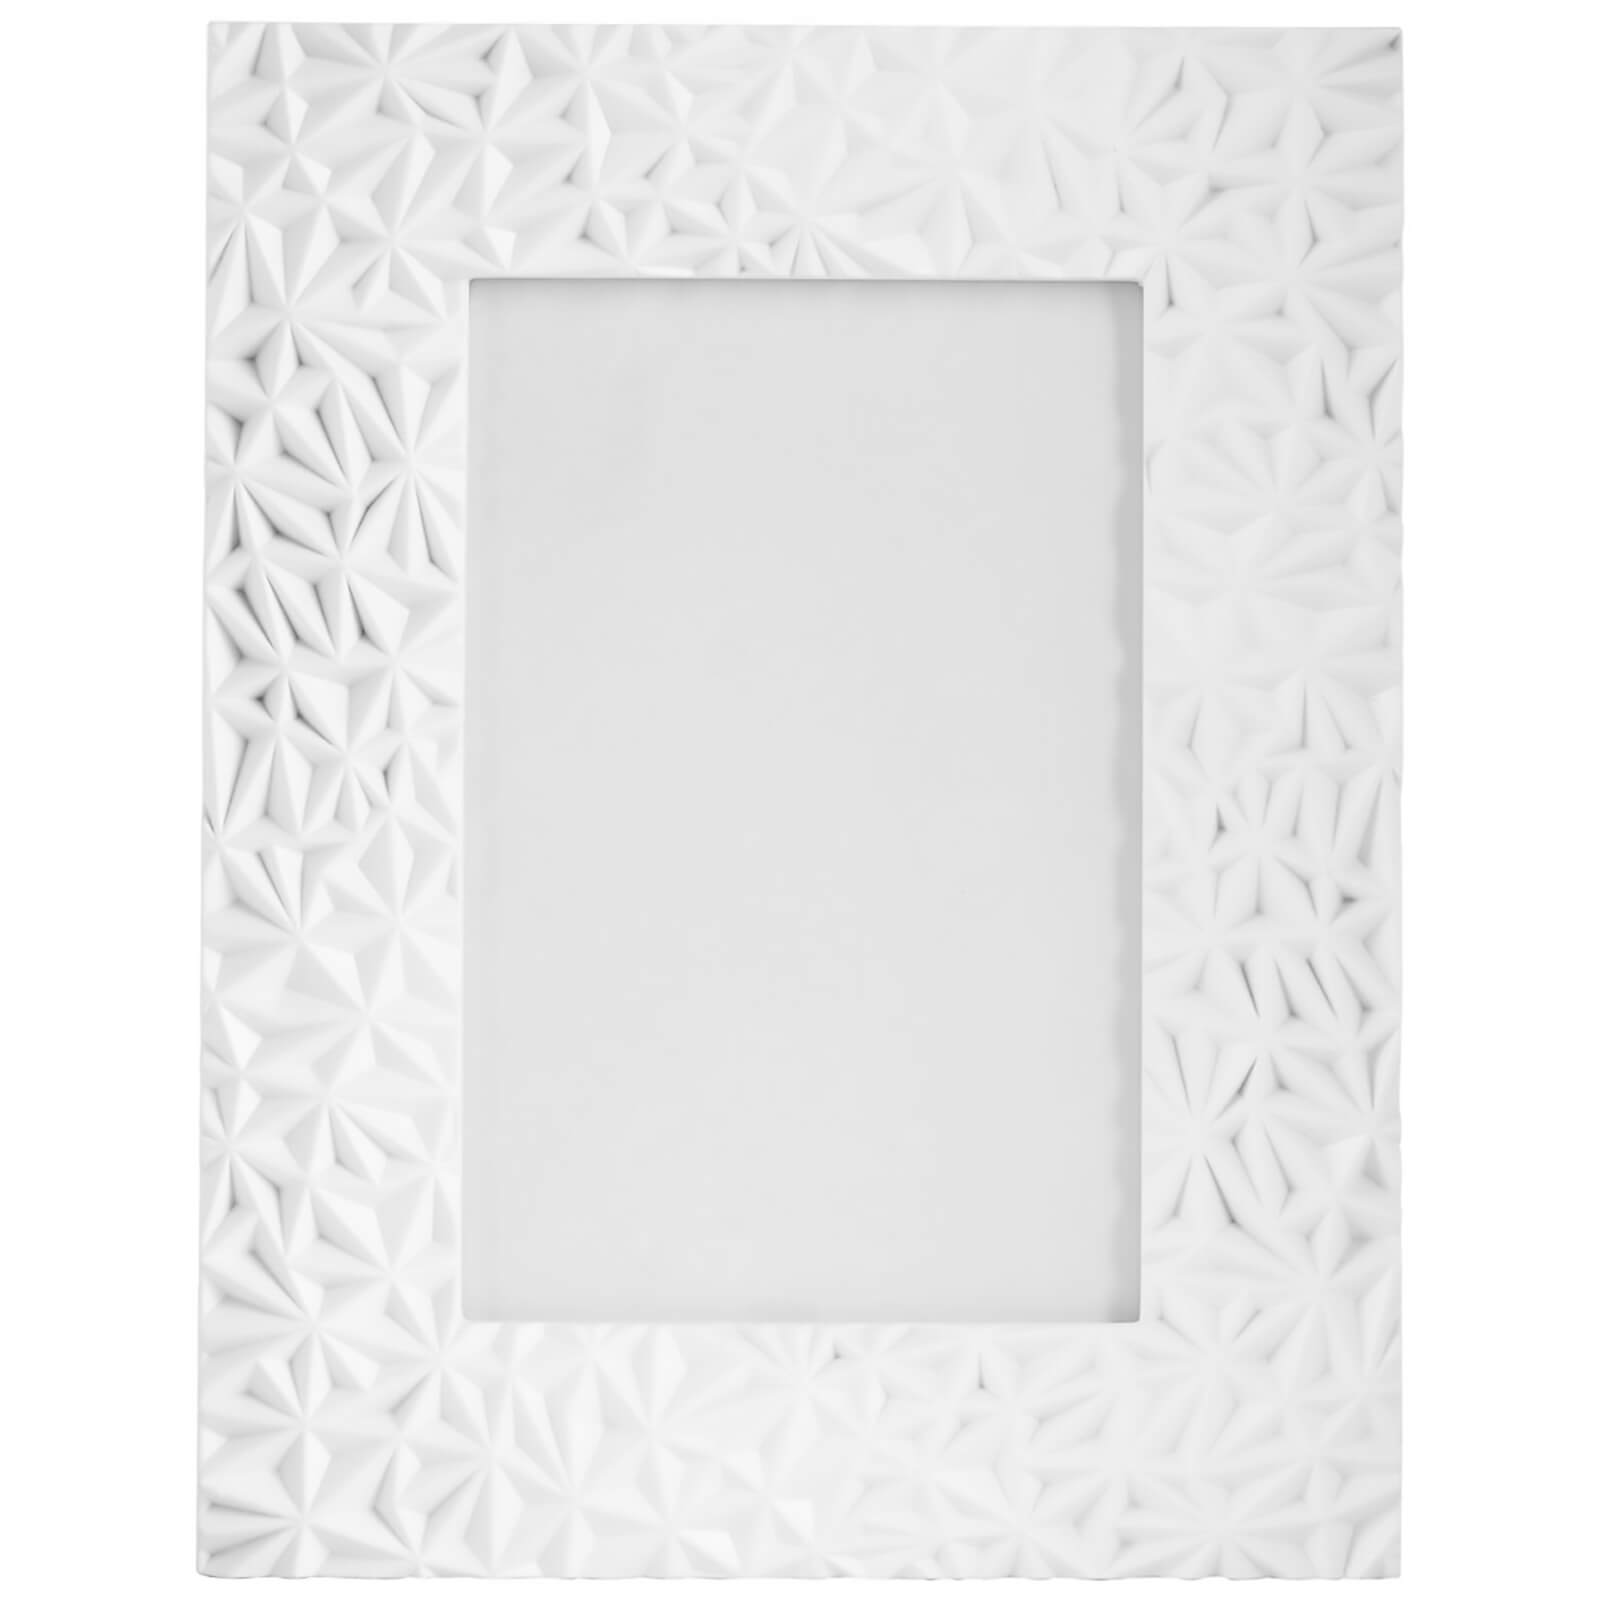 "Fifty Five South Geo Photo Frame - White 5"" x 7"""